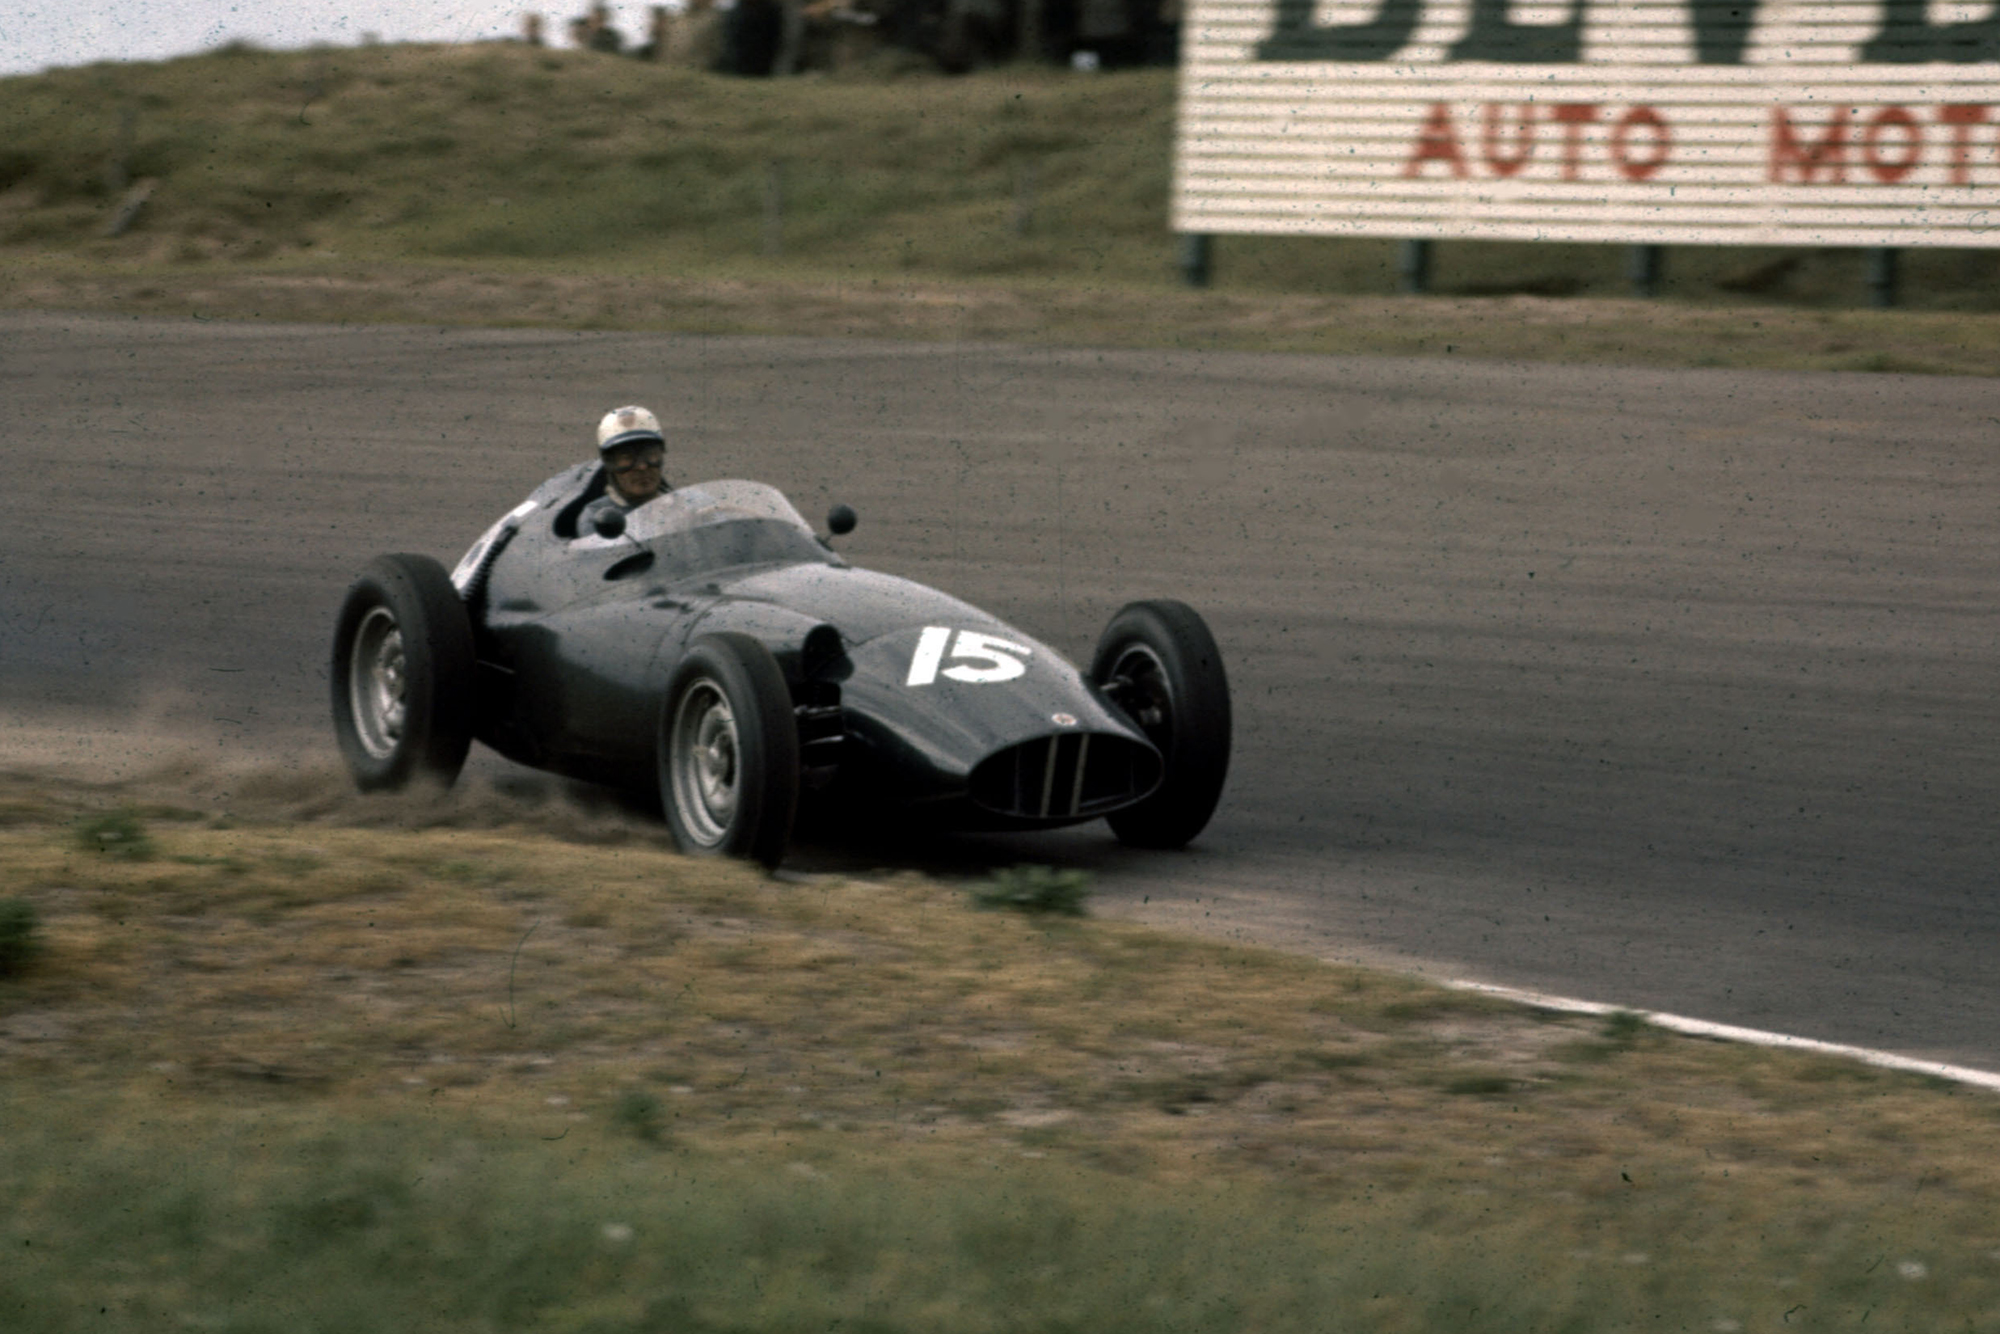 Harry Schell (BRM P25) in 2nd position